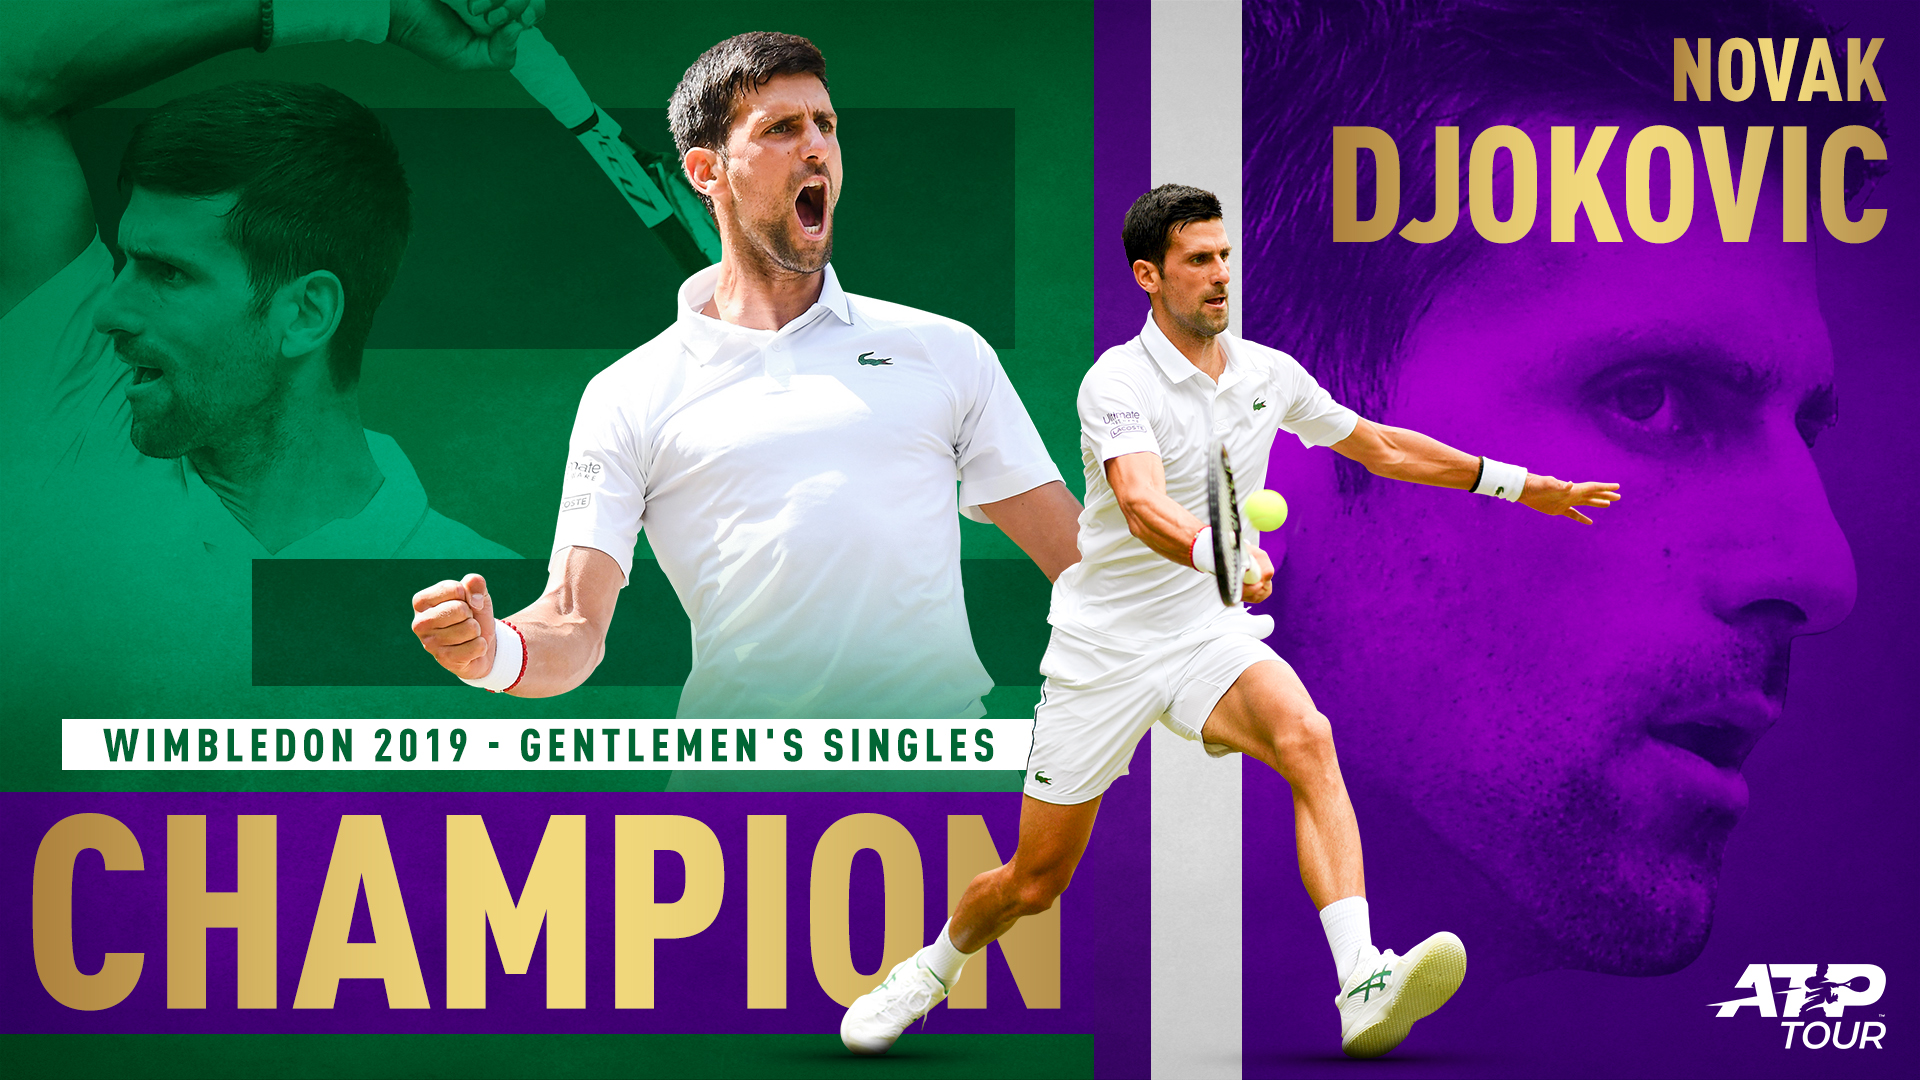 Novak Djokovic wins his fifth Wimbledon title on Sunday against Roger Federer